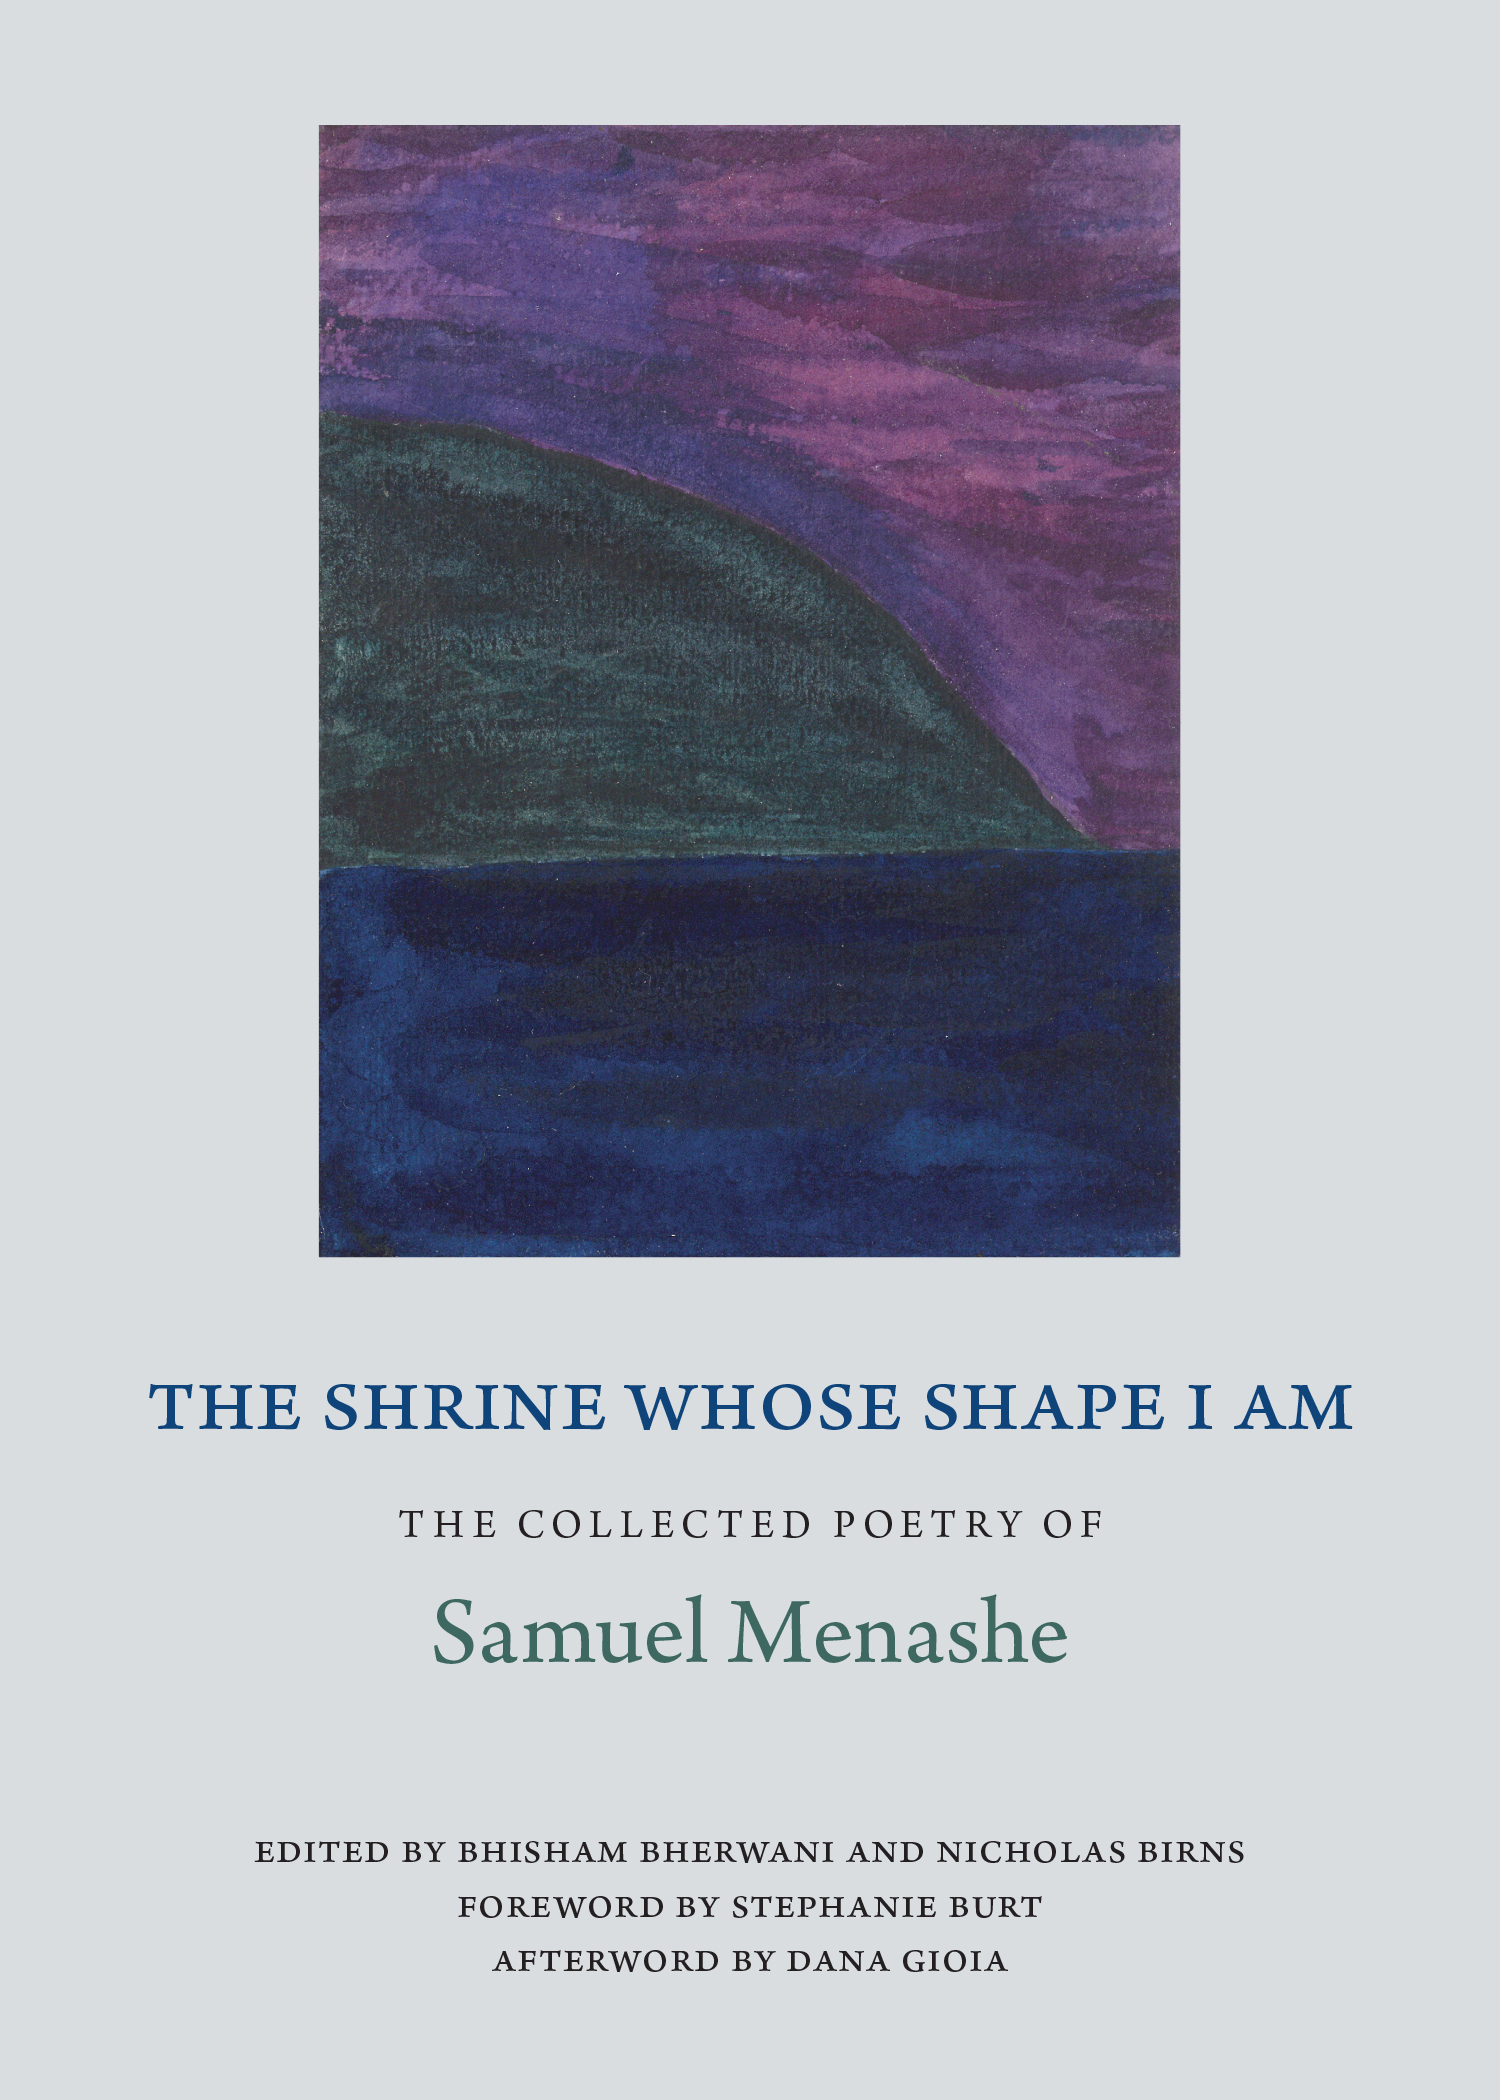 The Shrine Whose Shape I Am: The Collected Poetry of Samuel Menashe